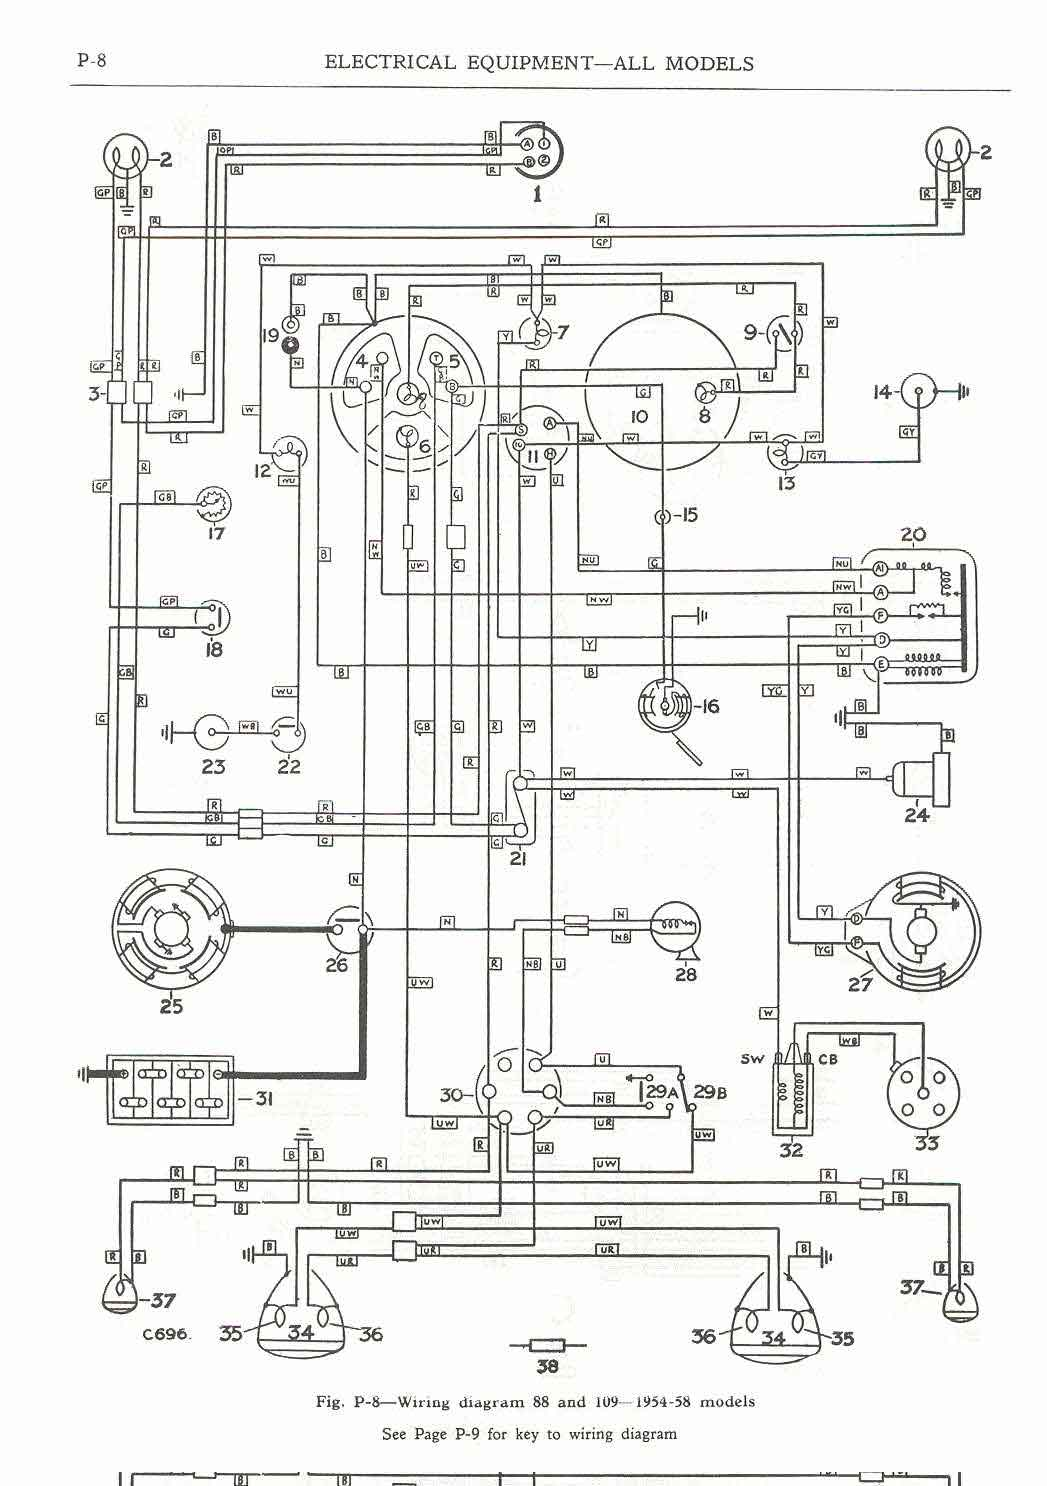 series 1 land rover wiring diagram land rover faq - repair & maintenance - series ... series 2 land rover wiring diagram